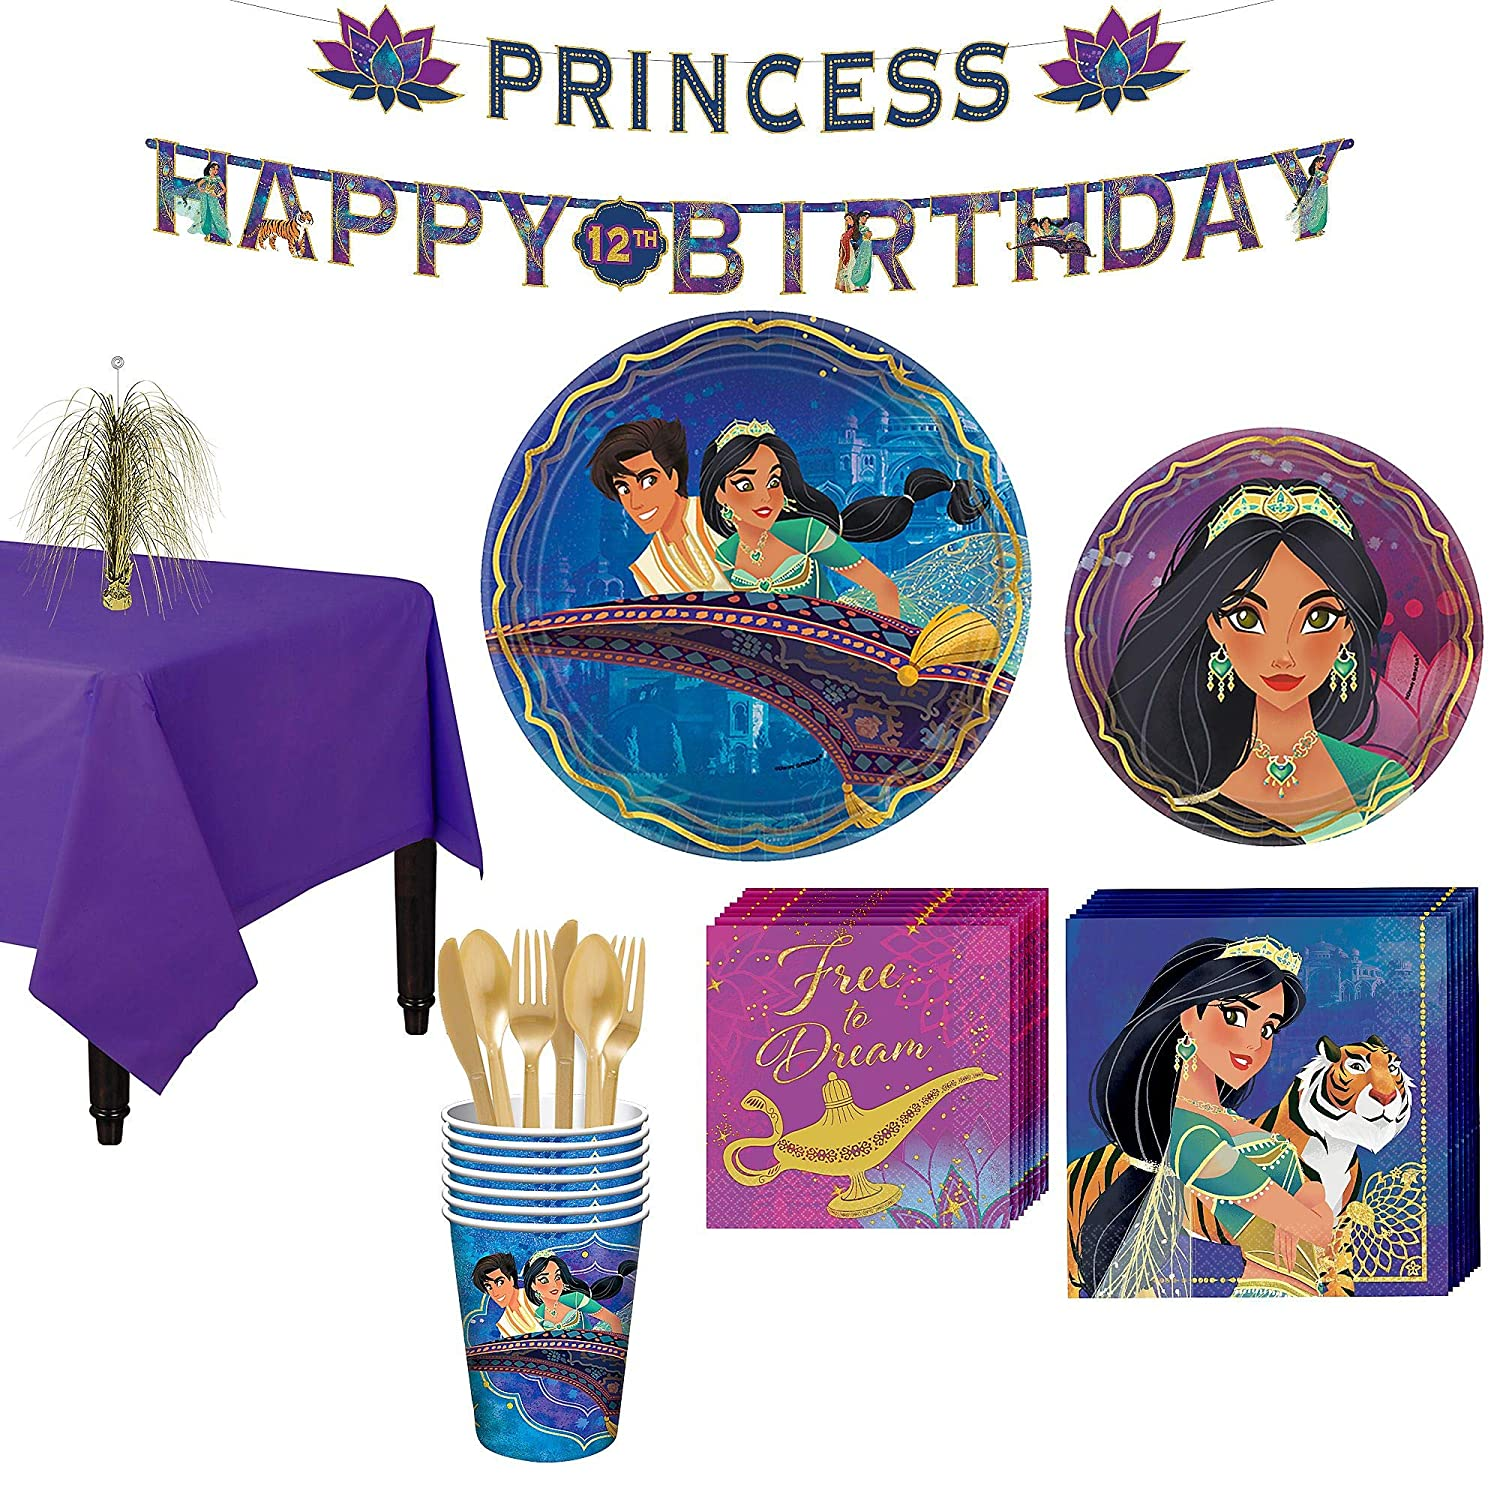 Aladdin Birthday Party Bundles for 8 Guests